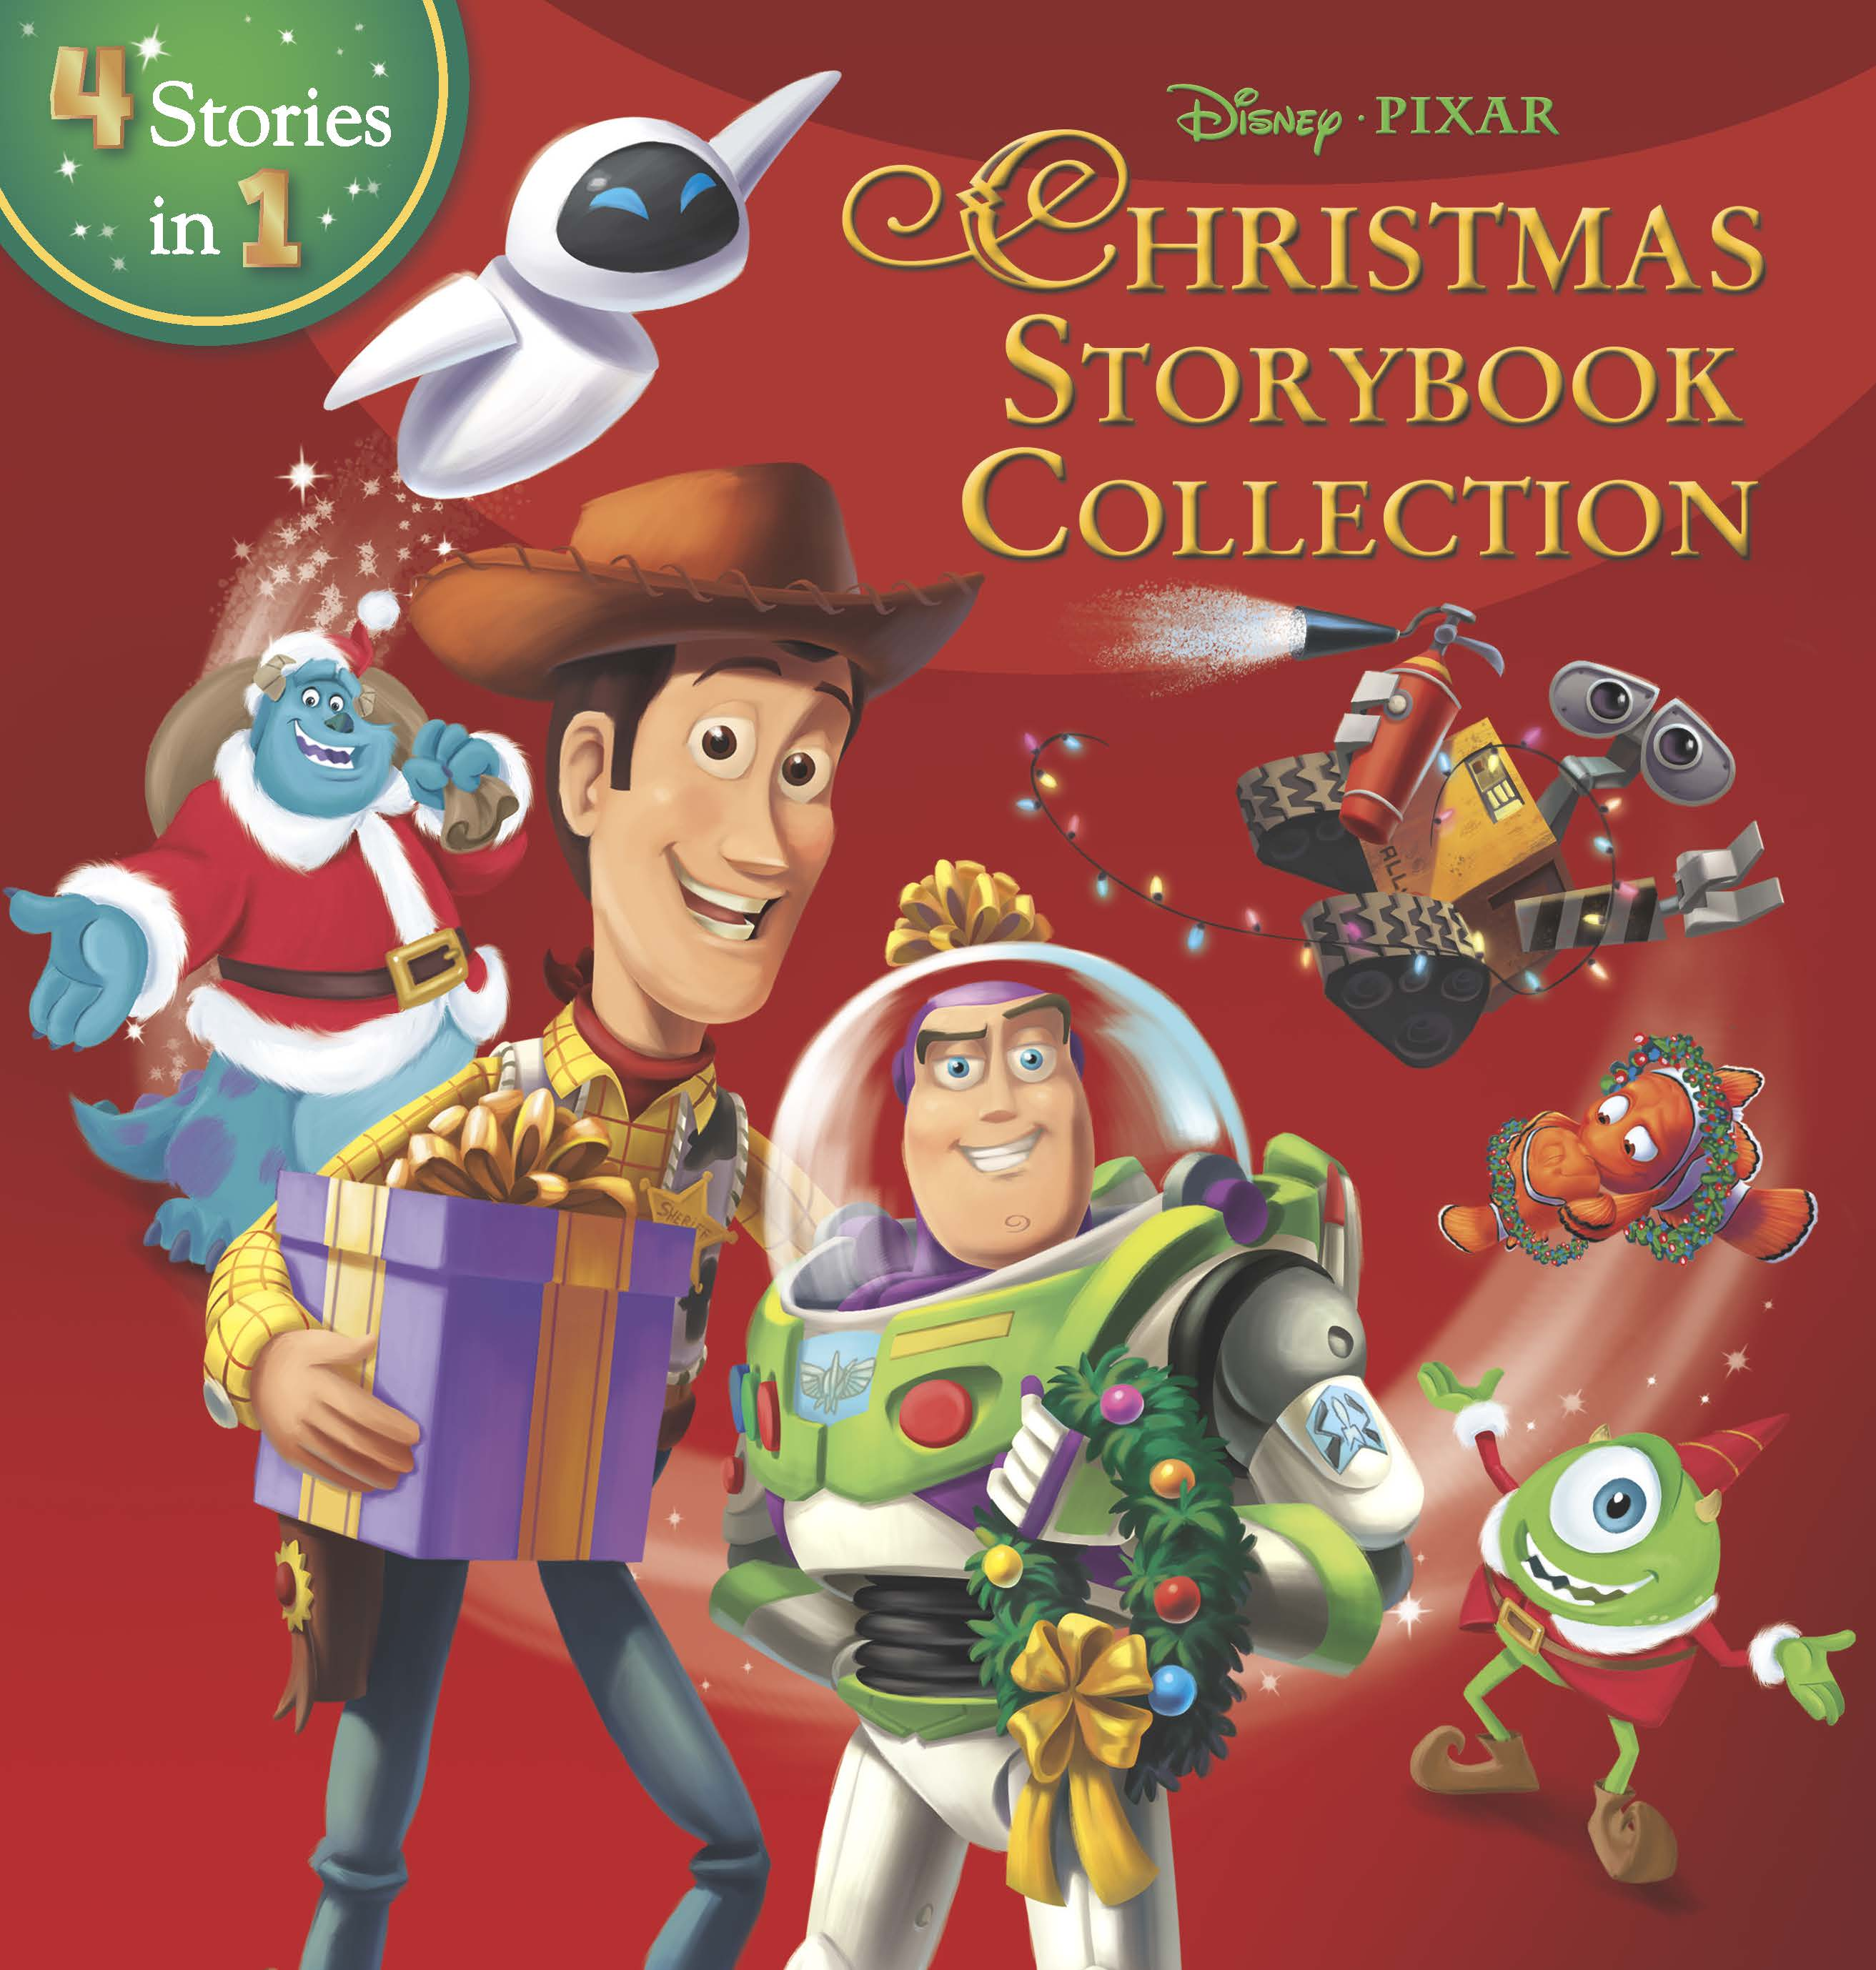 Disney*Pixar Christmas Storybook Collection